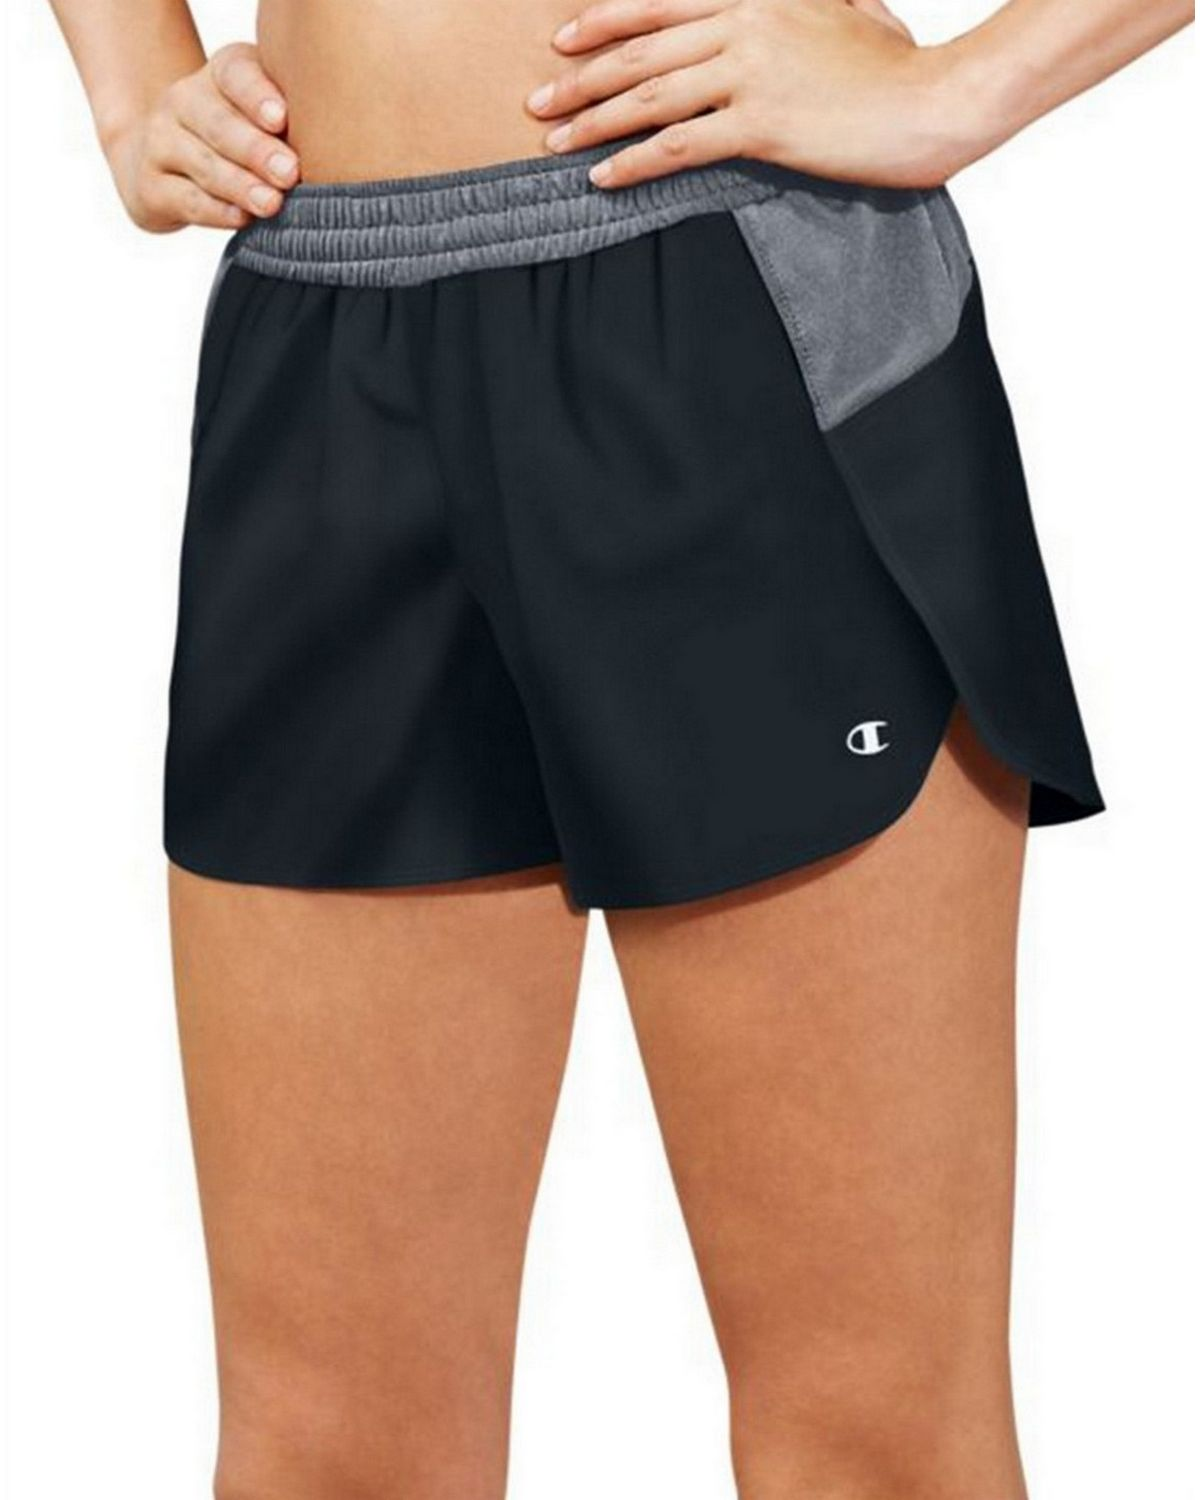 Champion M0570 Womens Sport Shorts 5 - Black/Medium Grey - M M0570